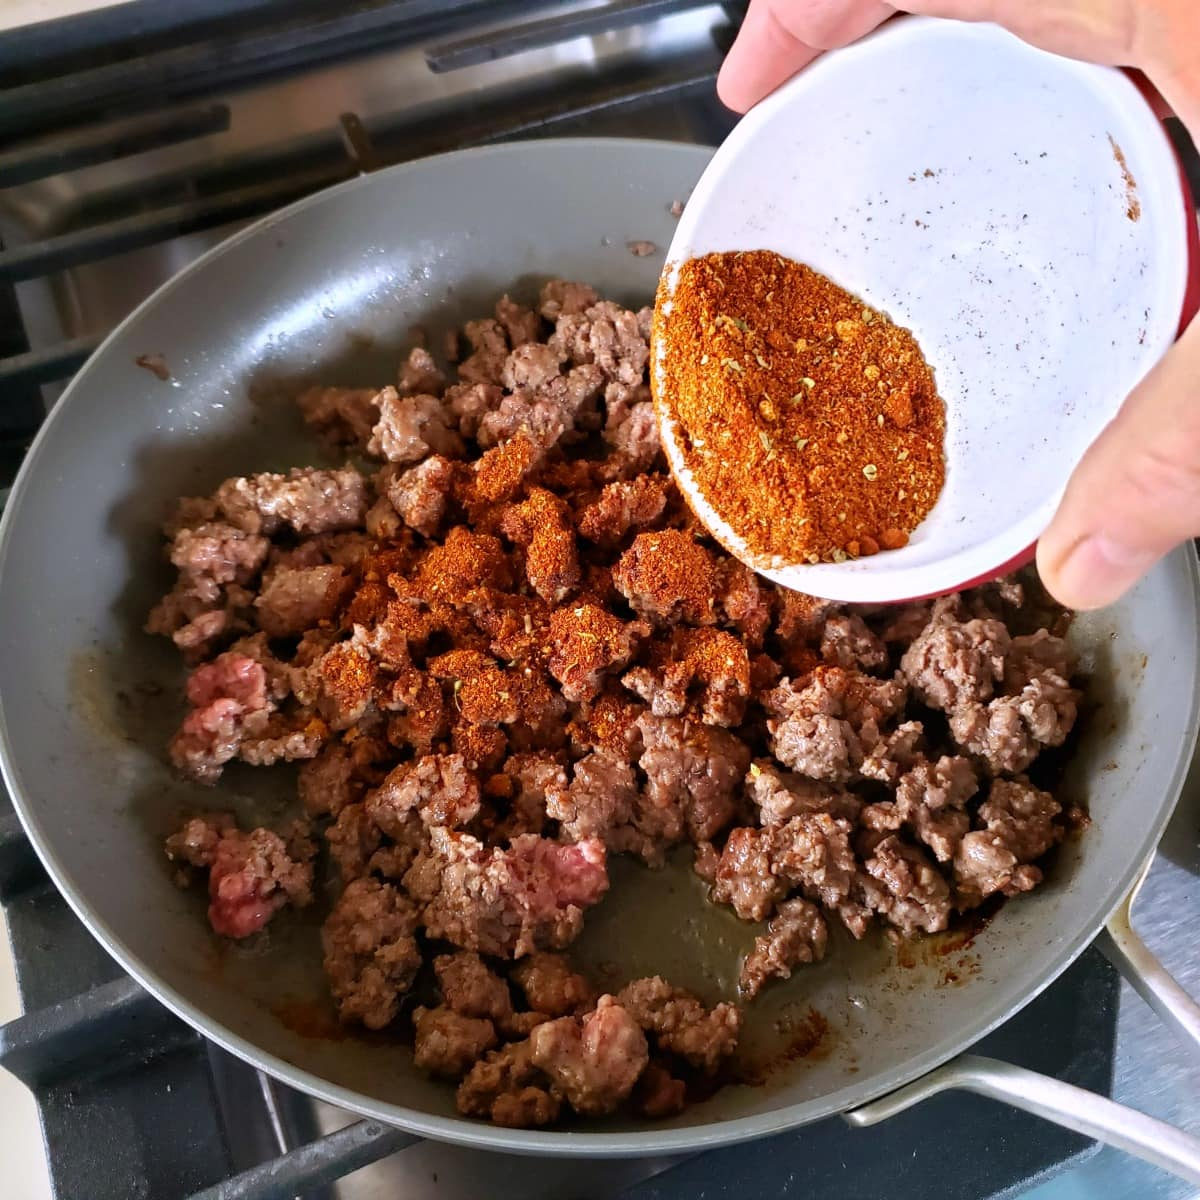 Add chili spices to the ground beef